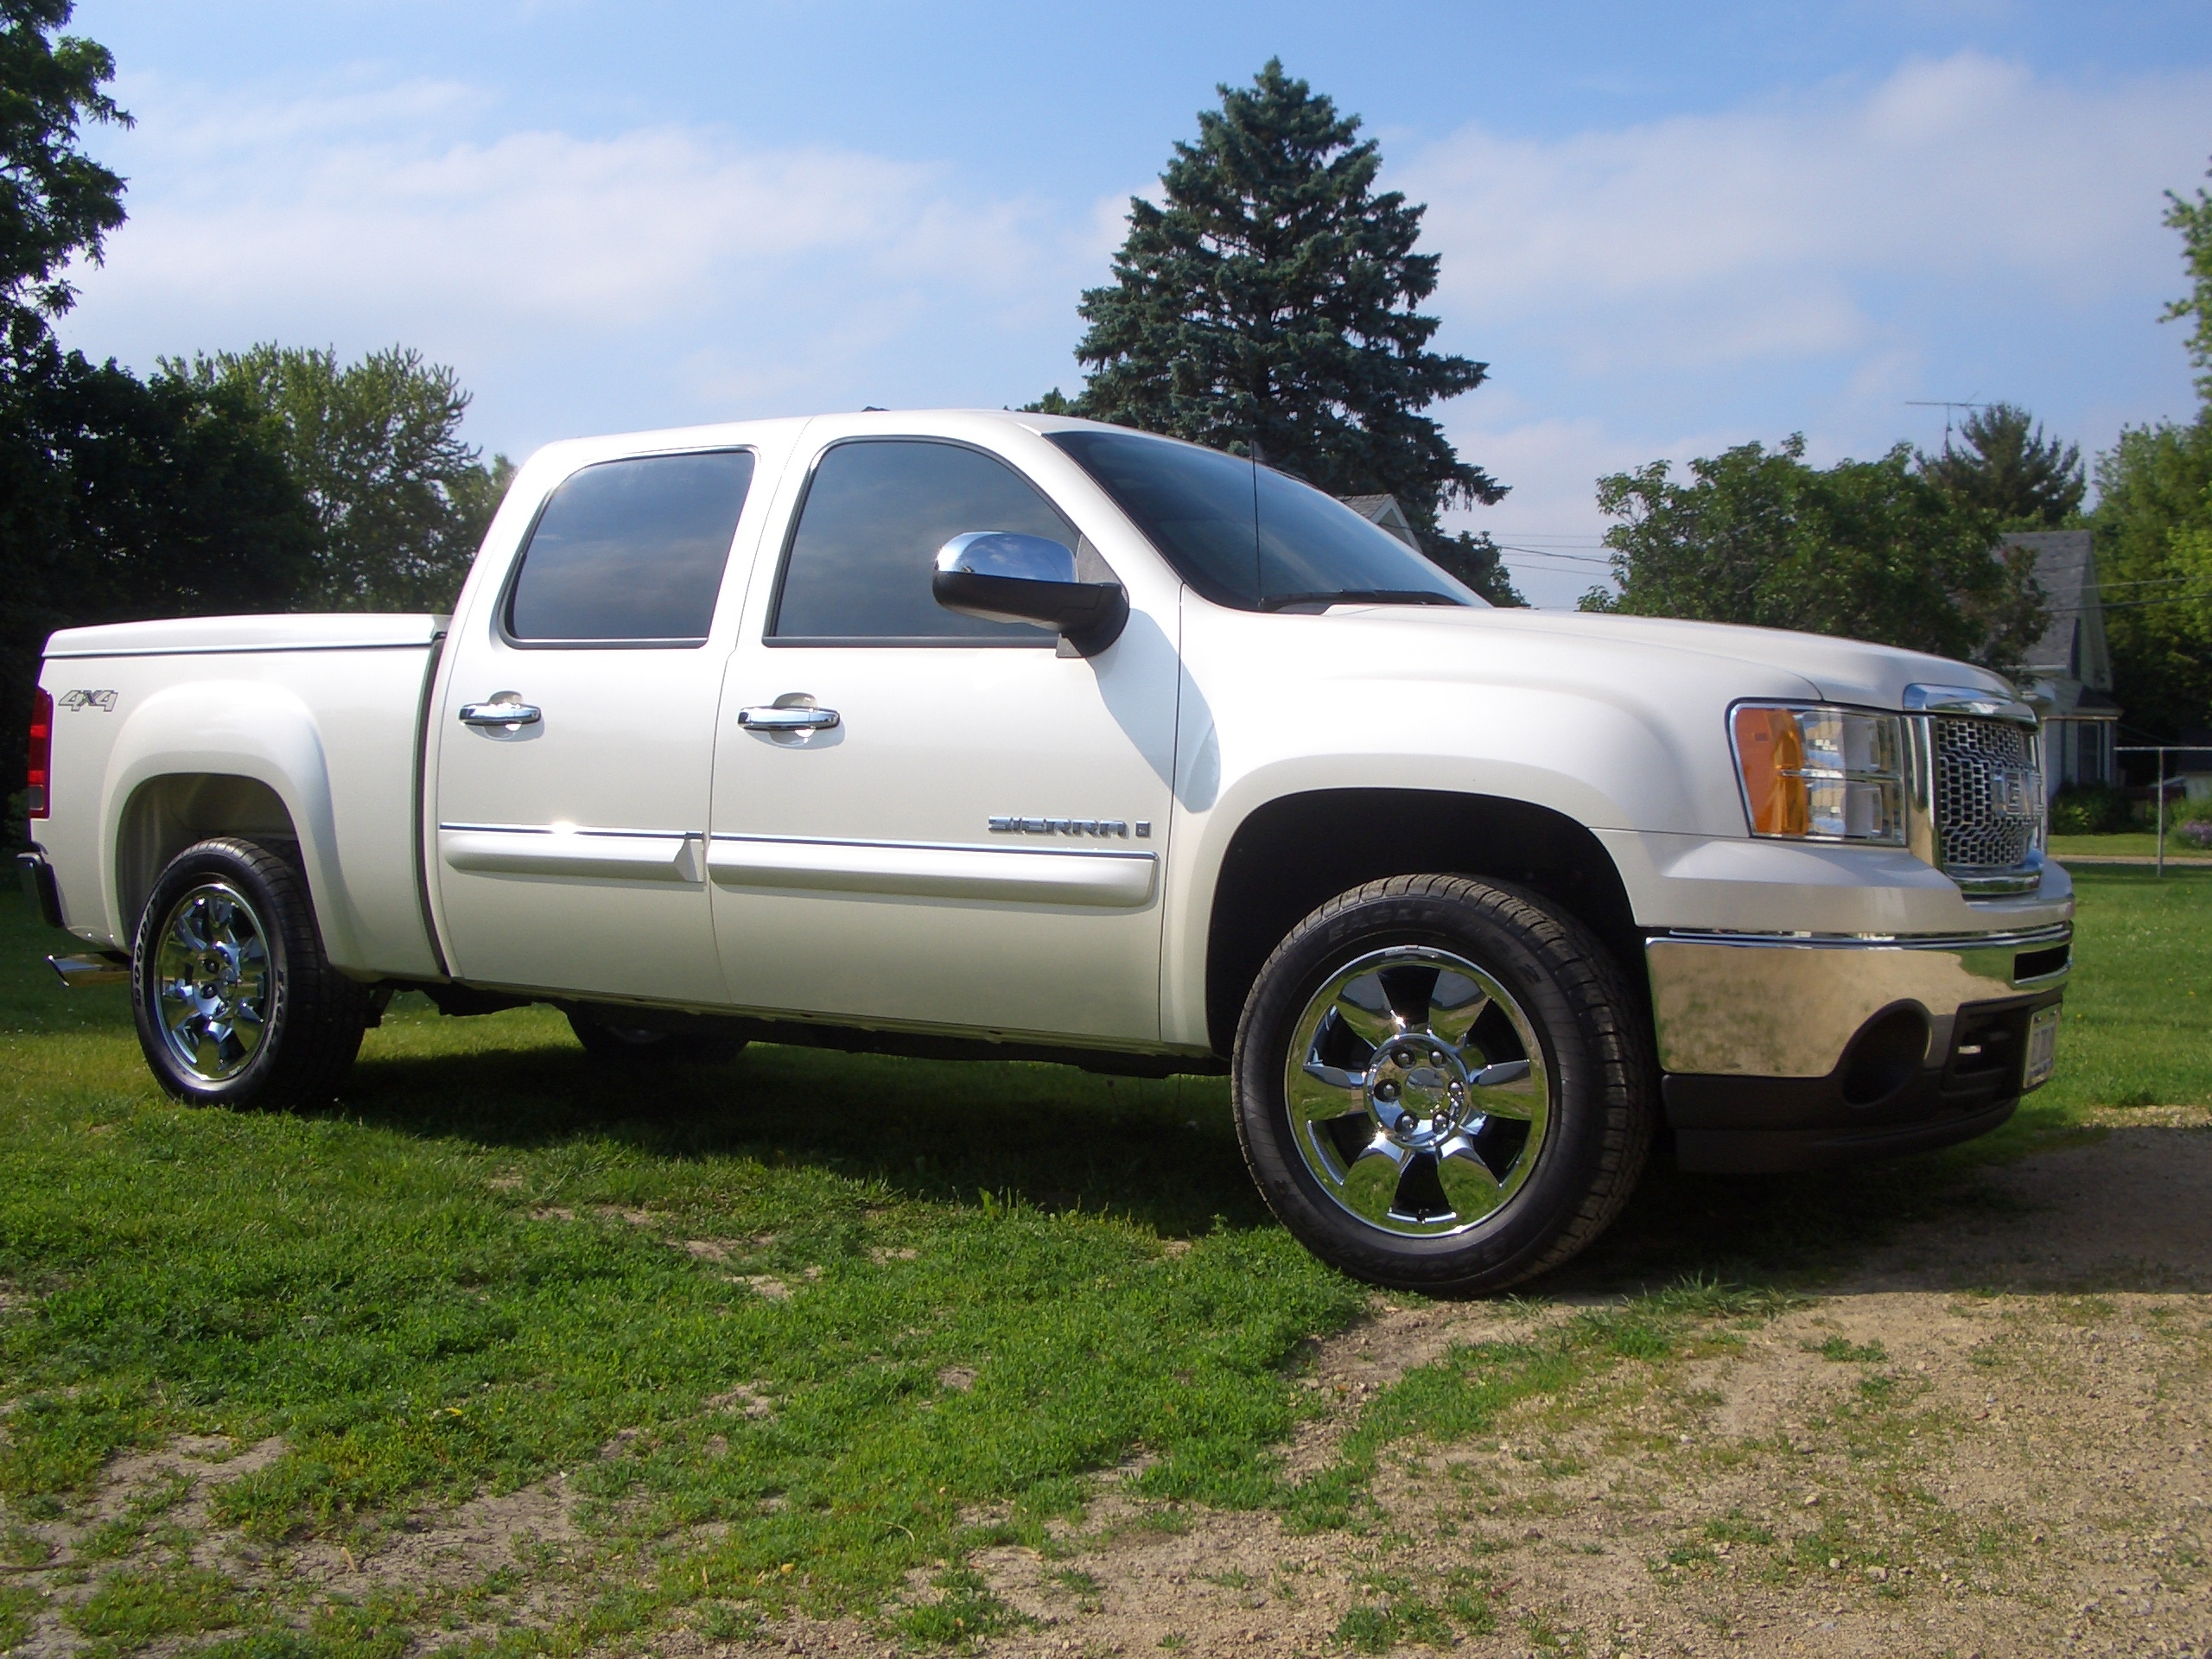 lasierra24 2009 gmc sierra 1500 crew cabslt specs photos. Black Bedroom Furniture Sets. Home Design Ideas